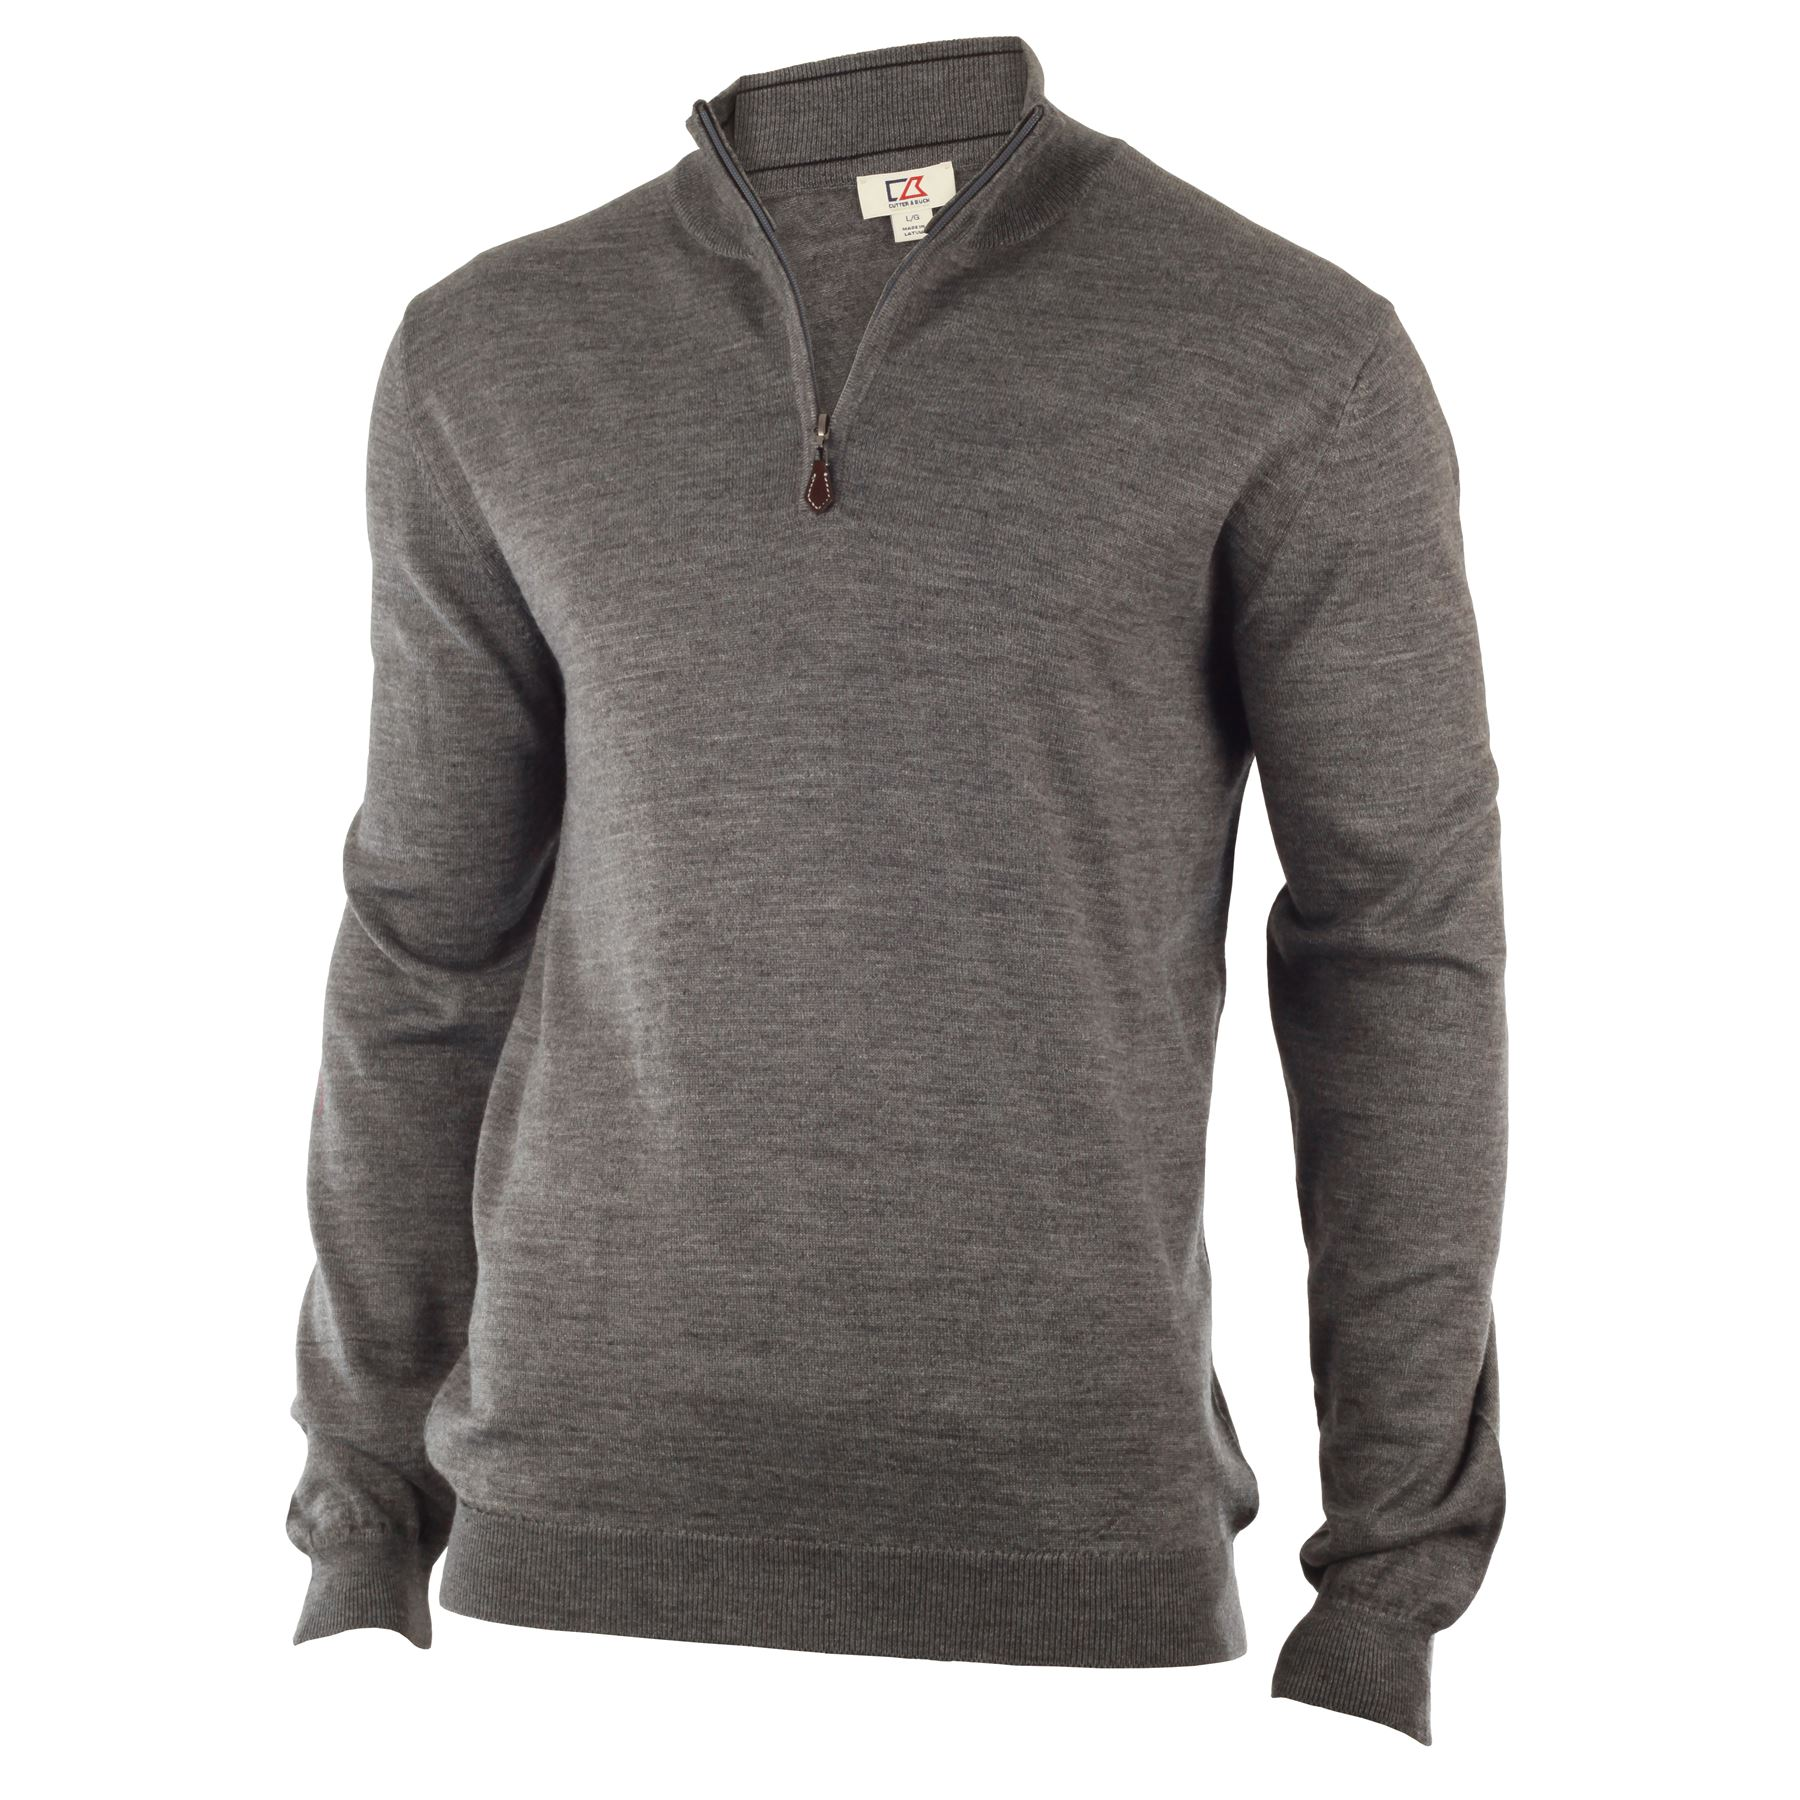 Jumpers & Cardigans. Buy men online at George. Shop from our latest Men range. Fantastic quality, style and value.